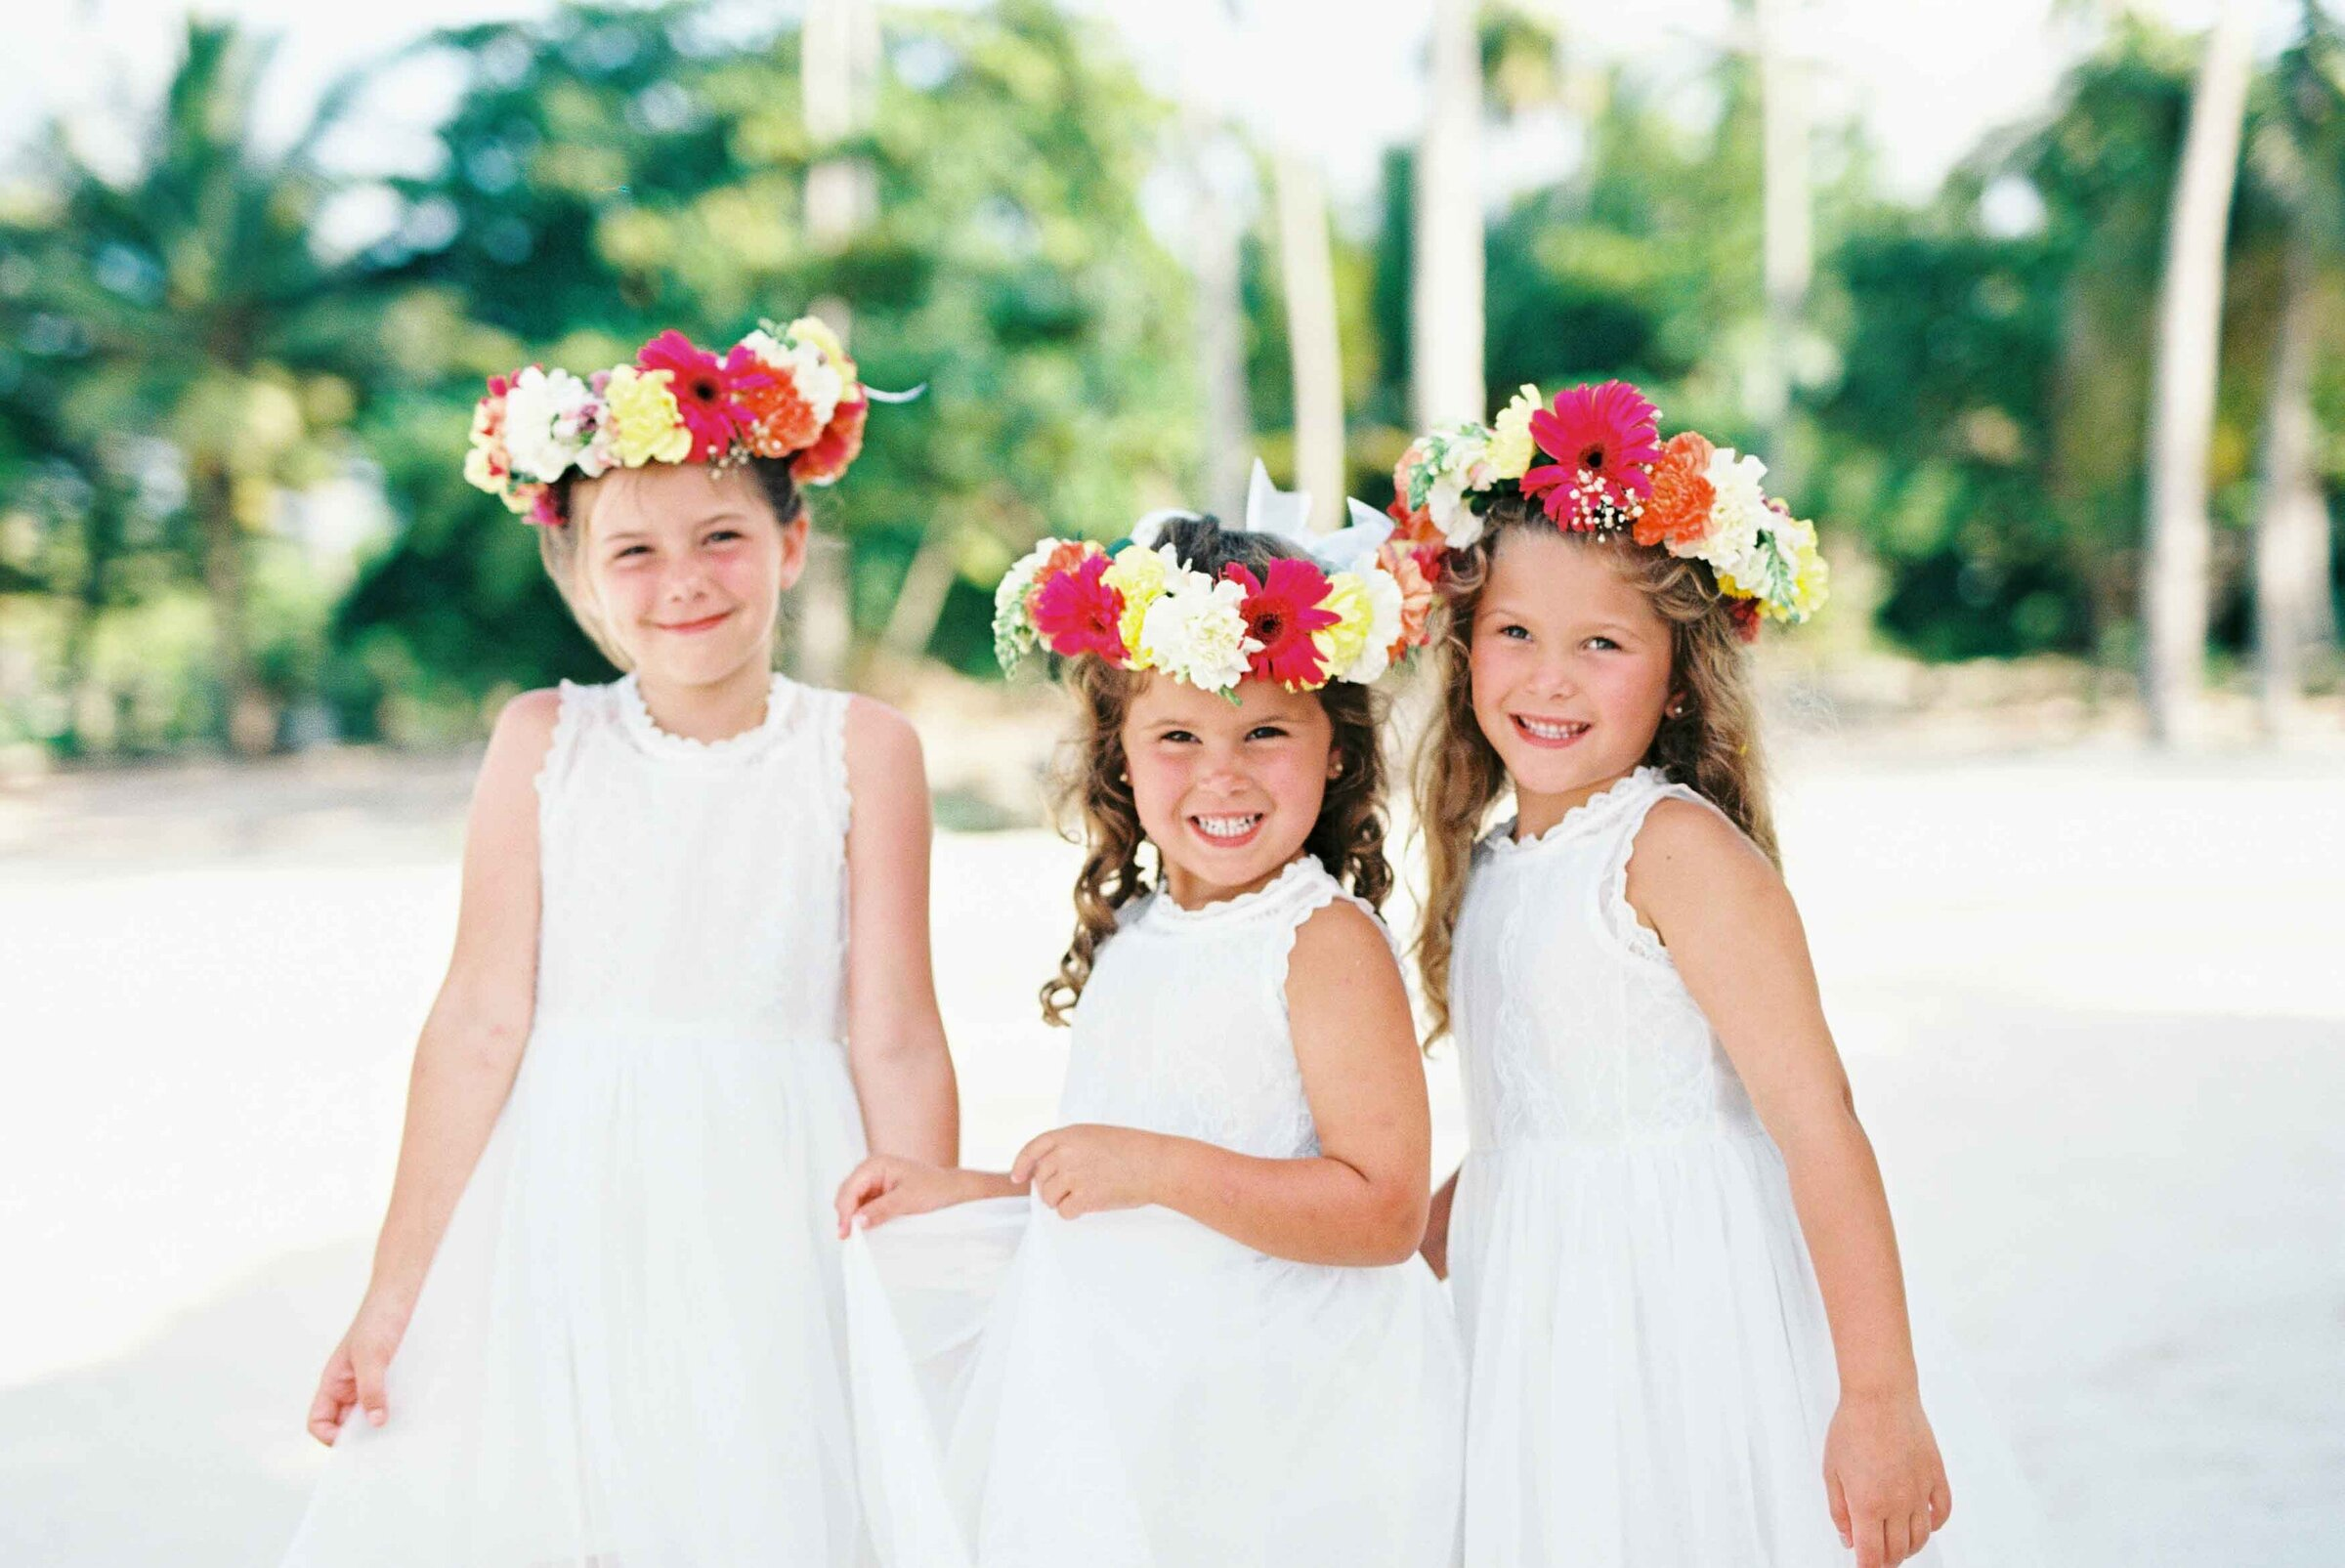 Punta cana Wedding - Flowergirls